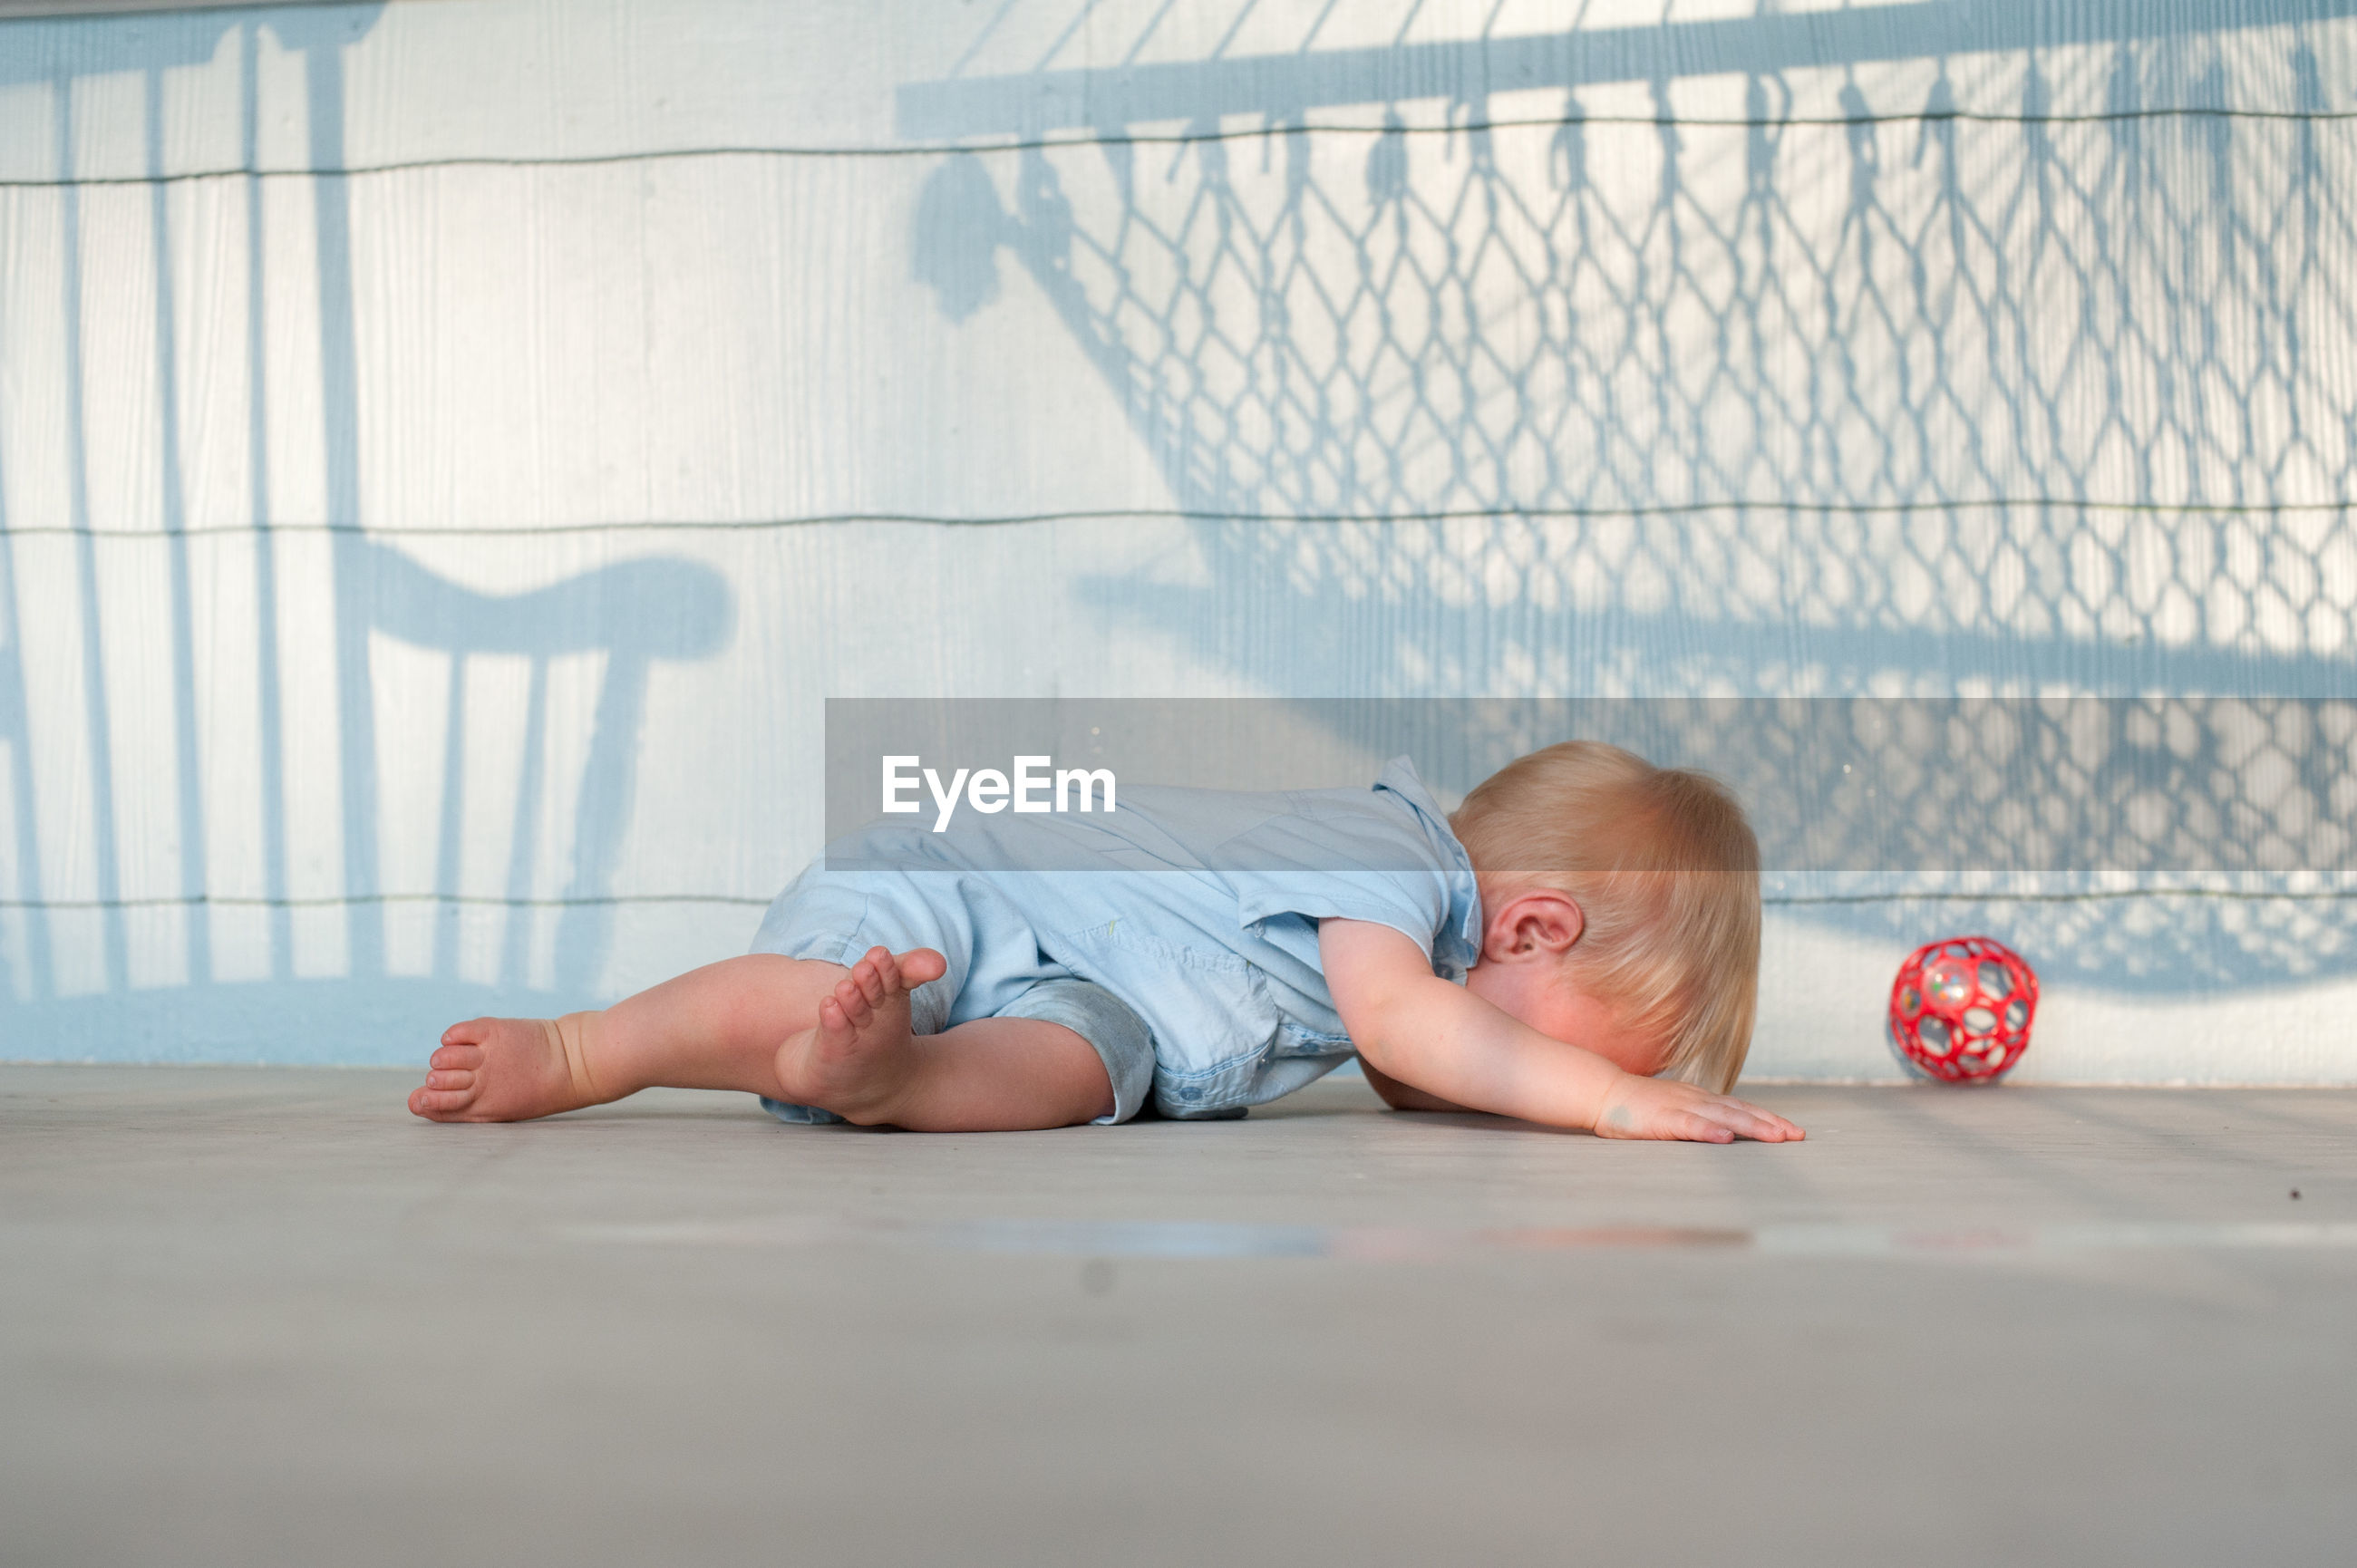 Full length of baby boy crying against wall at porch